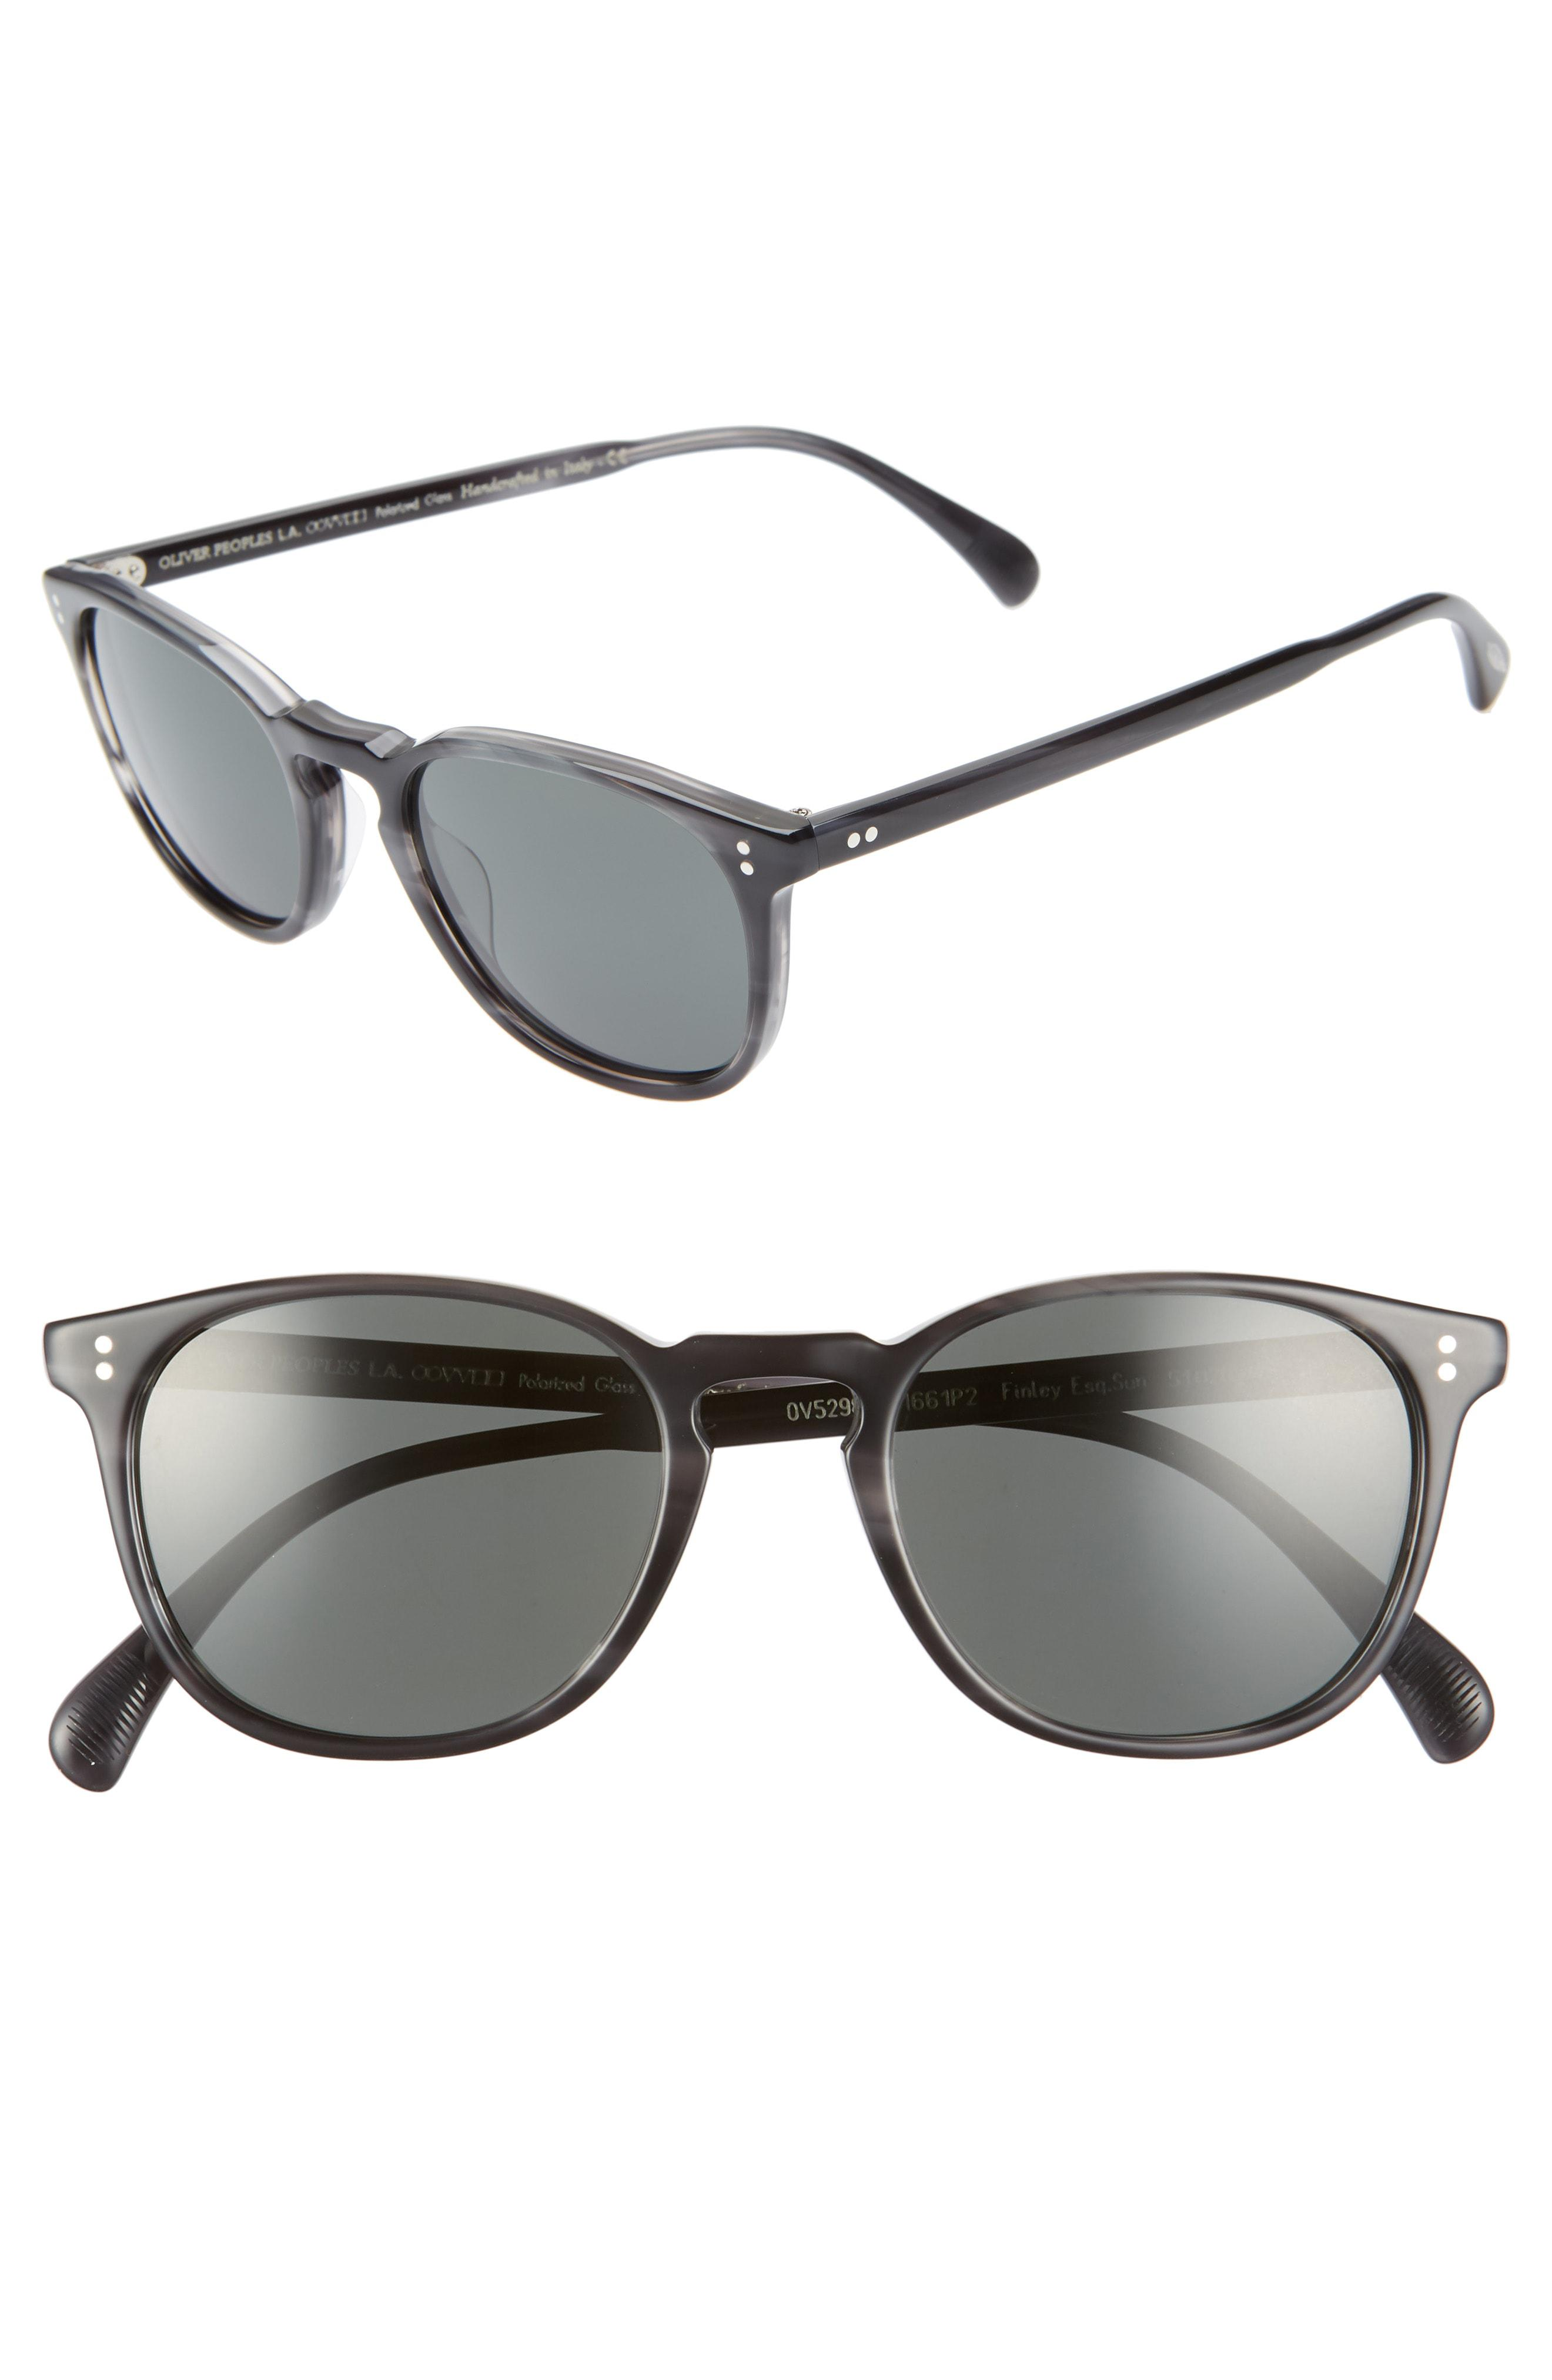 8837265a7a2 Lyst - Oliver Peoples Finley 51mm Polarized Sunglasses - in Gray for ...